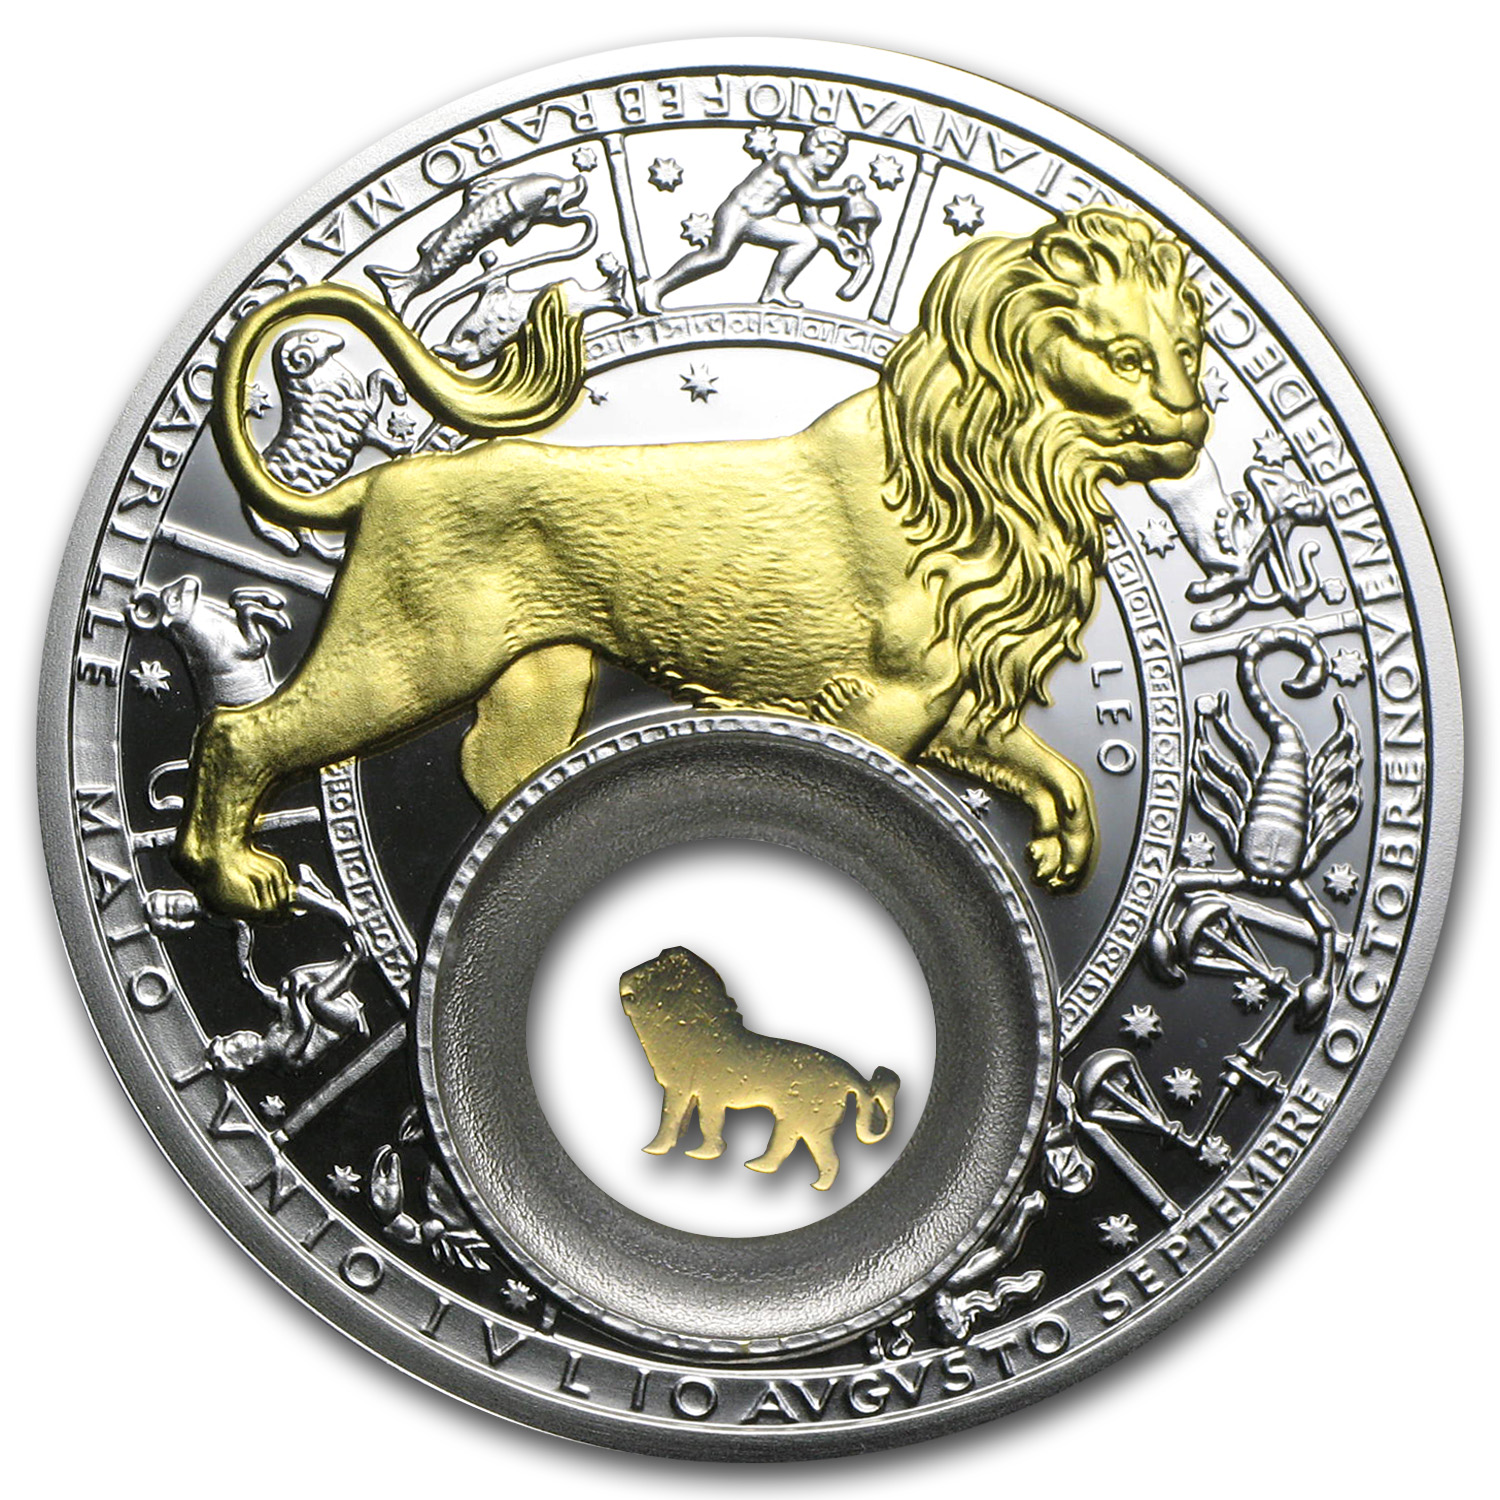 2013 Belarus Silver Proof 20 Rubles Zodiac Signs Leo